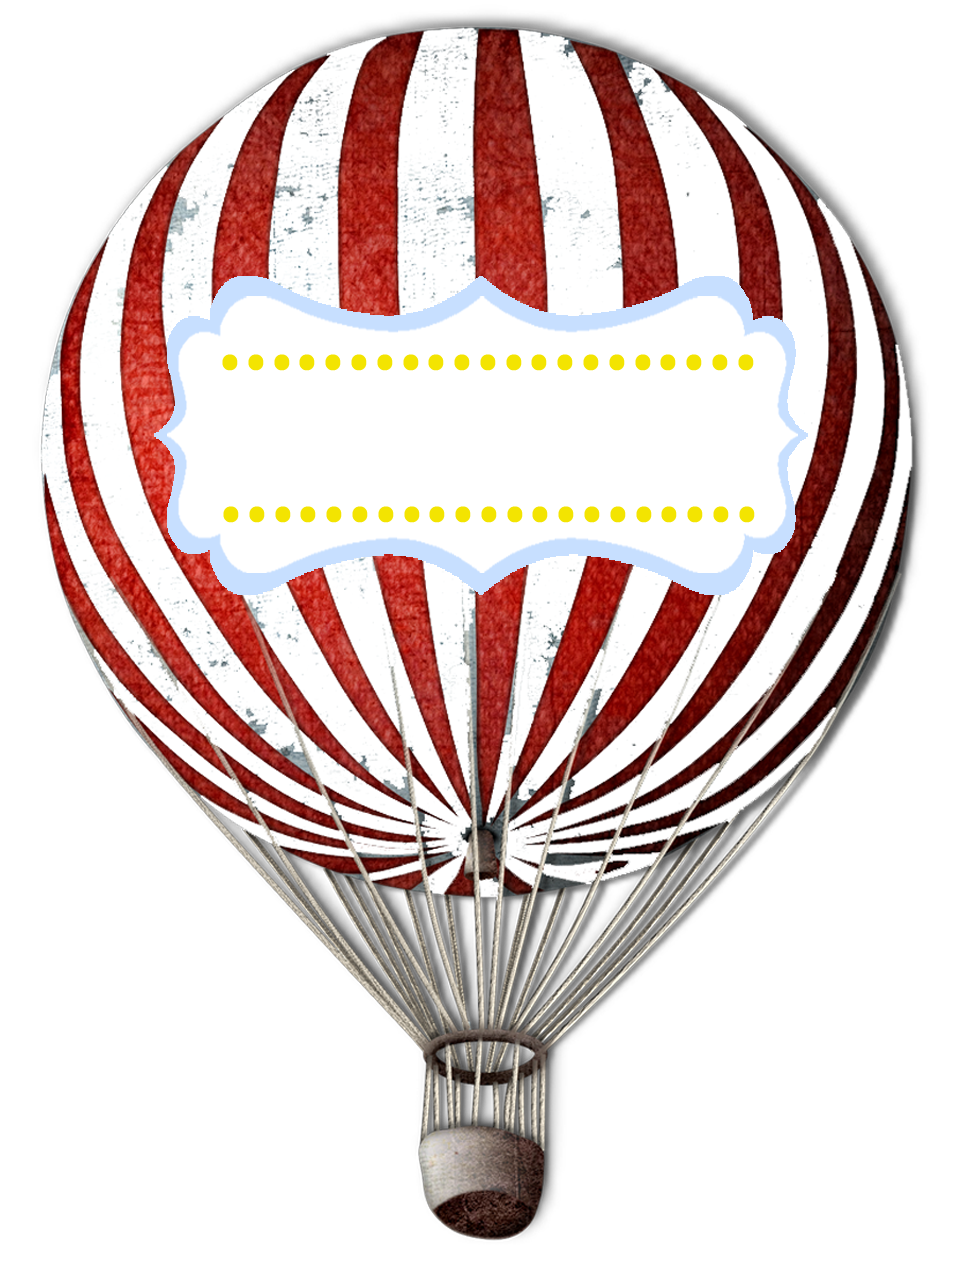 957x1267 Drawn Hot Air Balloon Vintage Circus